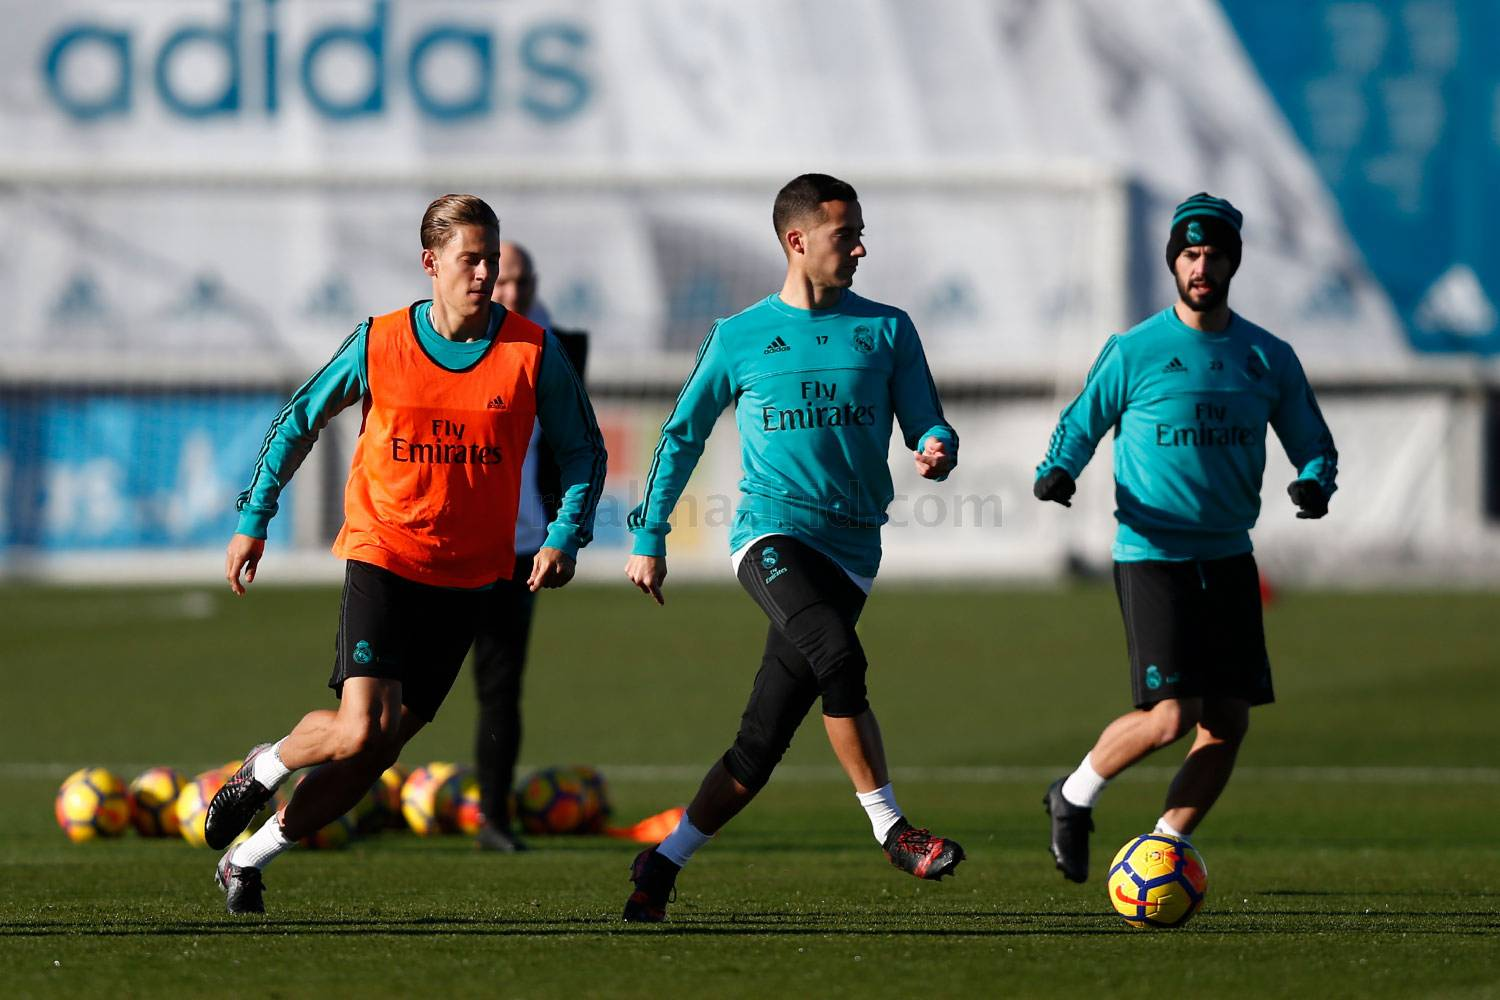 Real Madrid - Entrenamiento del Real Madrid - 19-12-2017